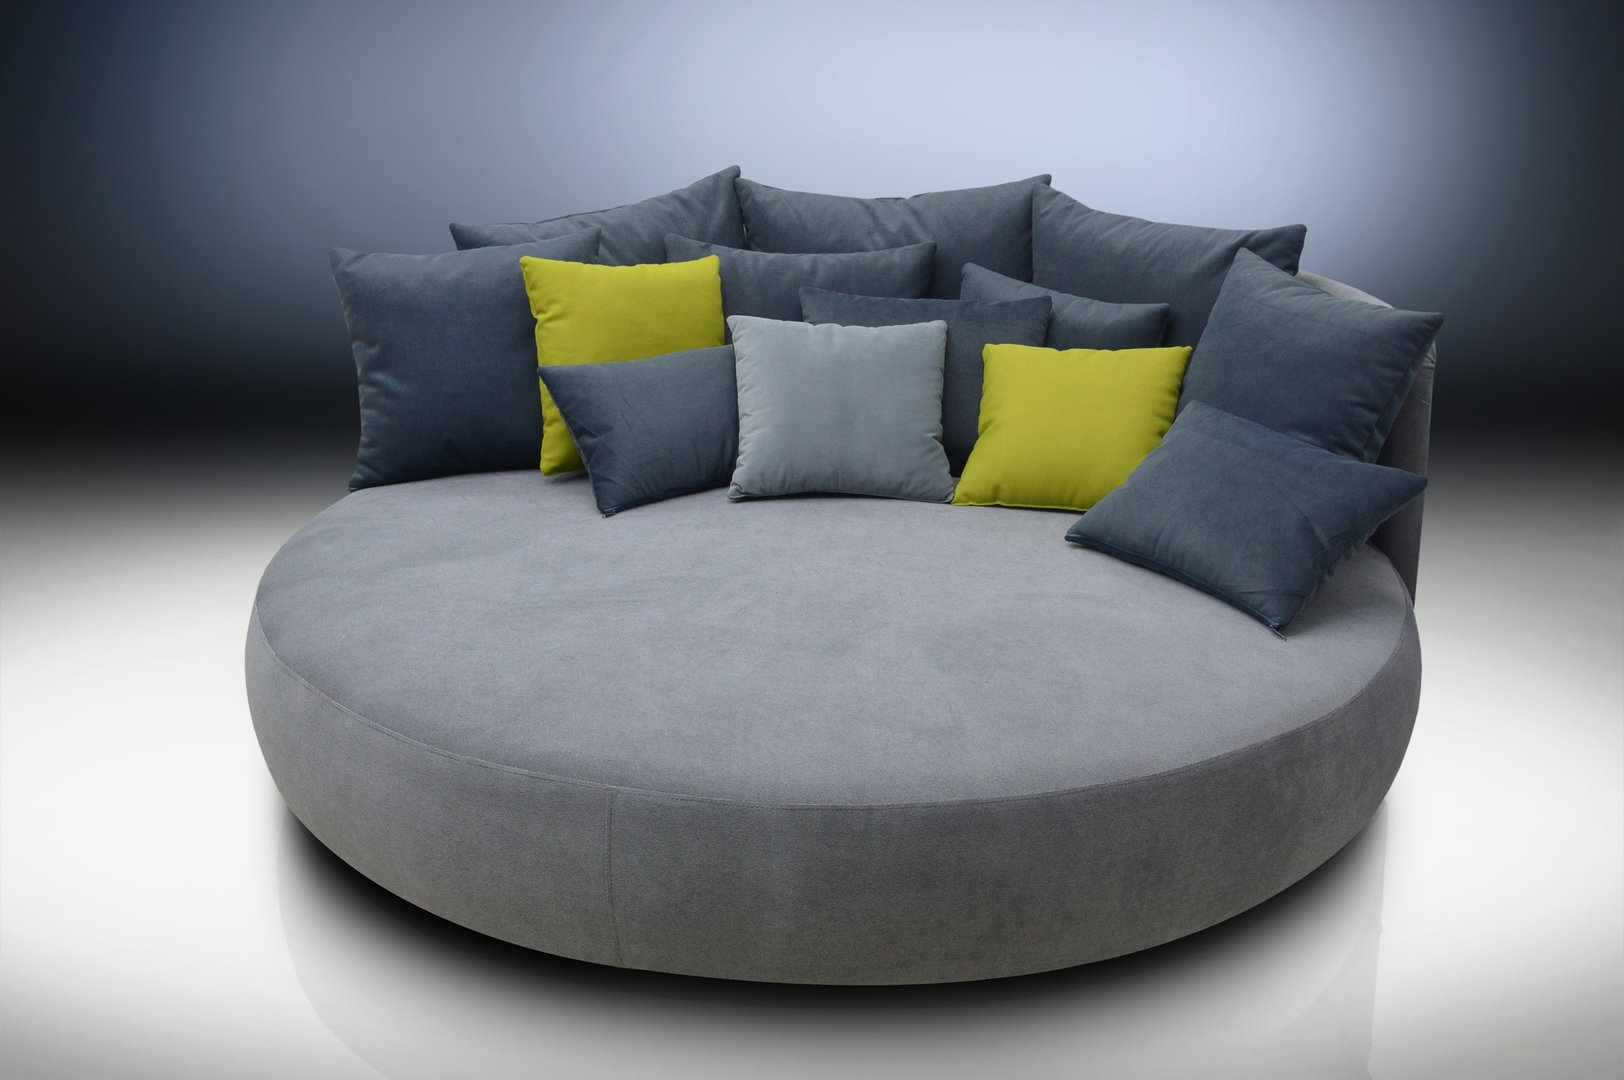 Round Sofas For Most Current Sofa : Sofa Chair Round Elegant Sofa Half Round Sofa Sofas Round (View 6 of 15)